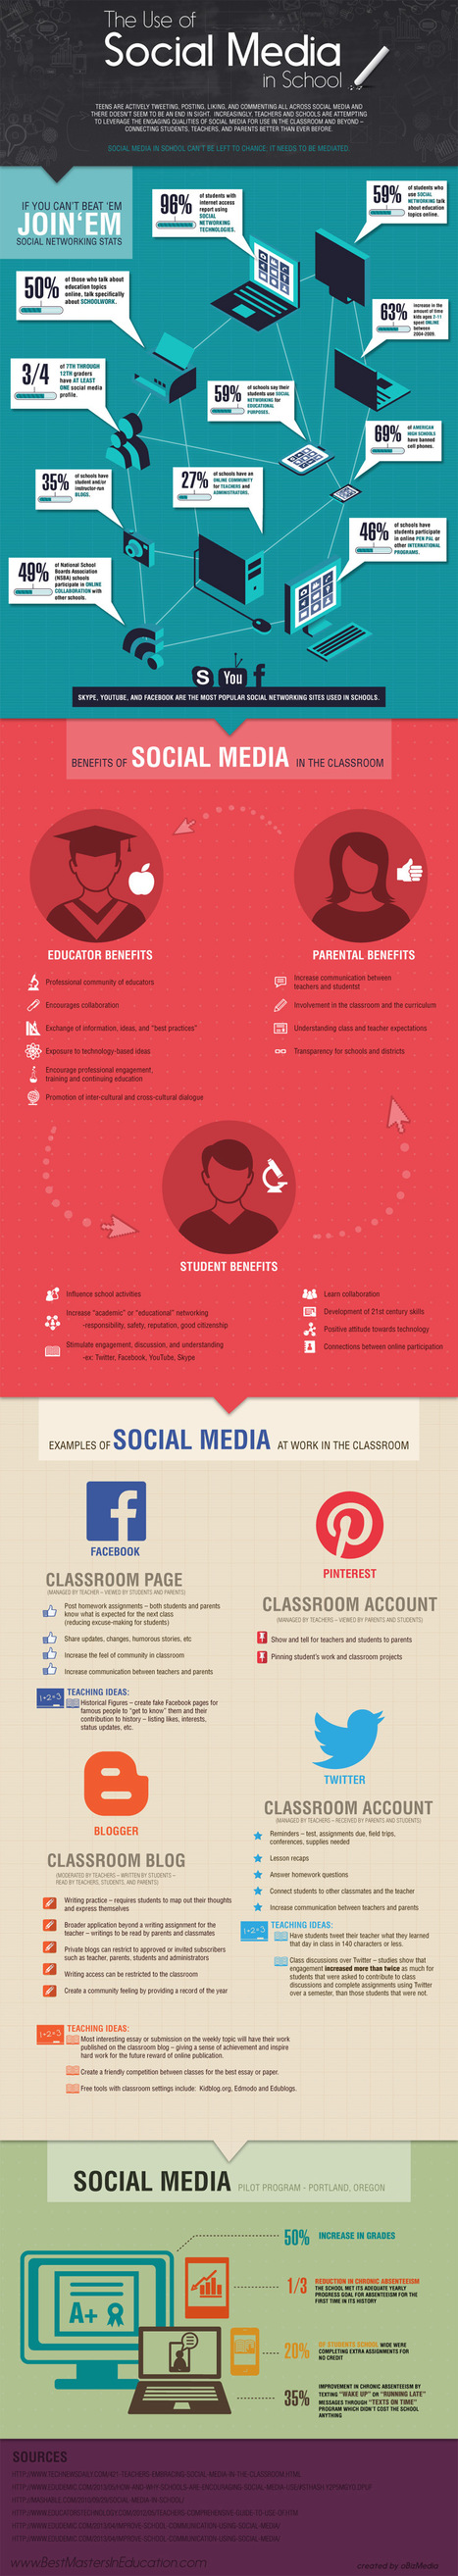 The Use of Social Media in Schools – an infographic /@BerriePelser | Media | Scoop.it